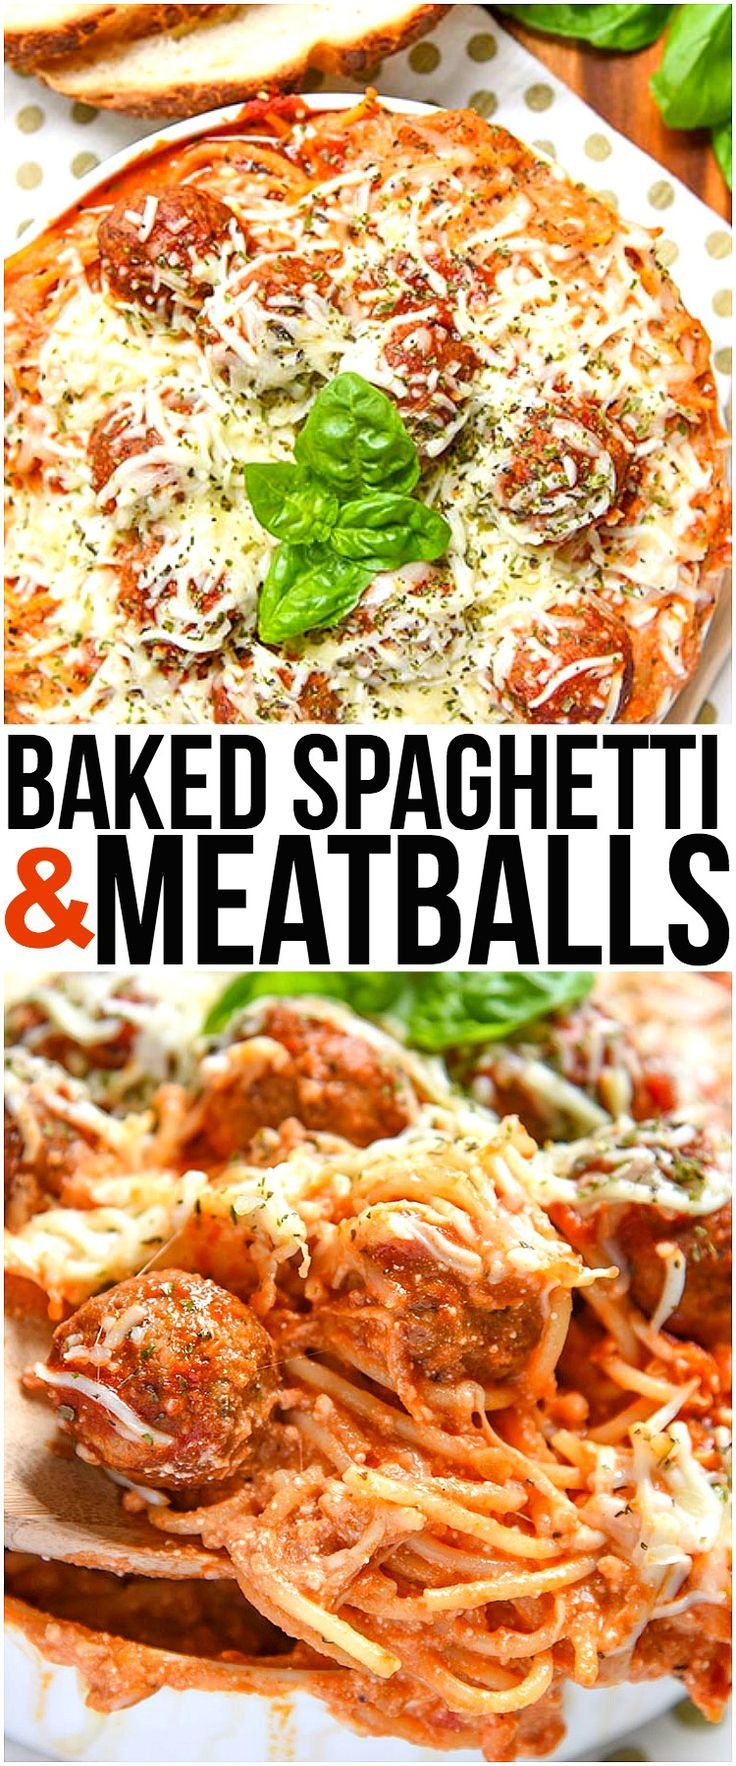 Baked Spaghetti and Meatballs is an easy dinner recipe of Italian Meatballs with Homemade Marinara Sauce, Pasta, Italian Cheese, and Spice.   via @CourtneysSweets